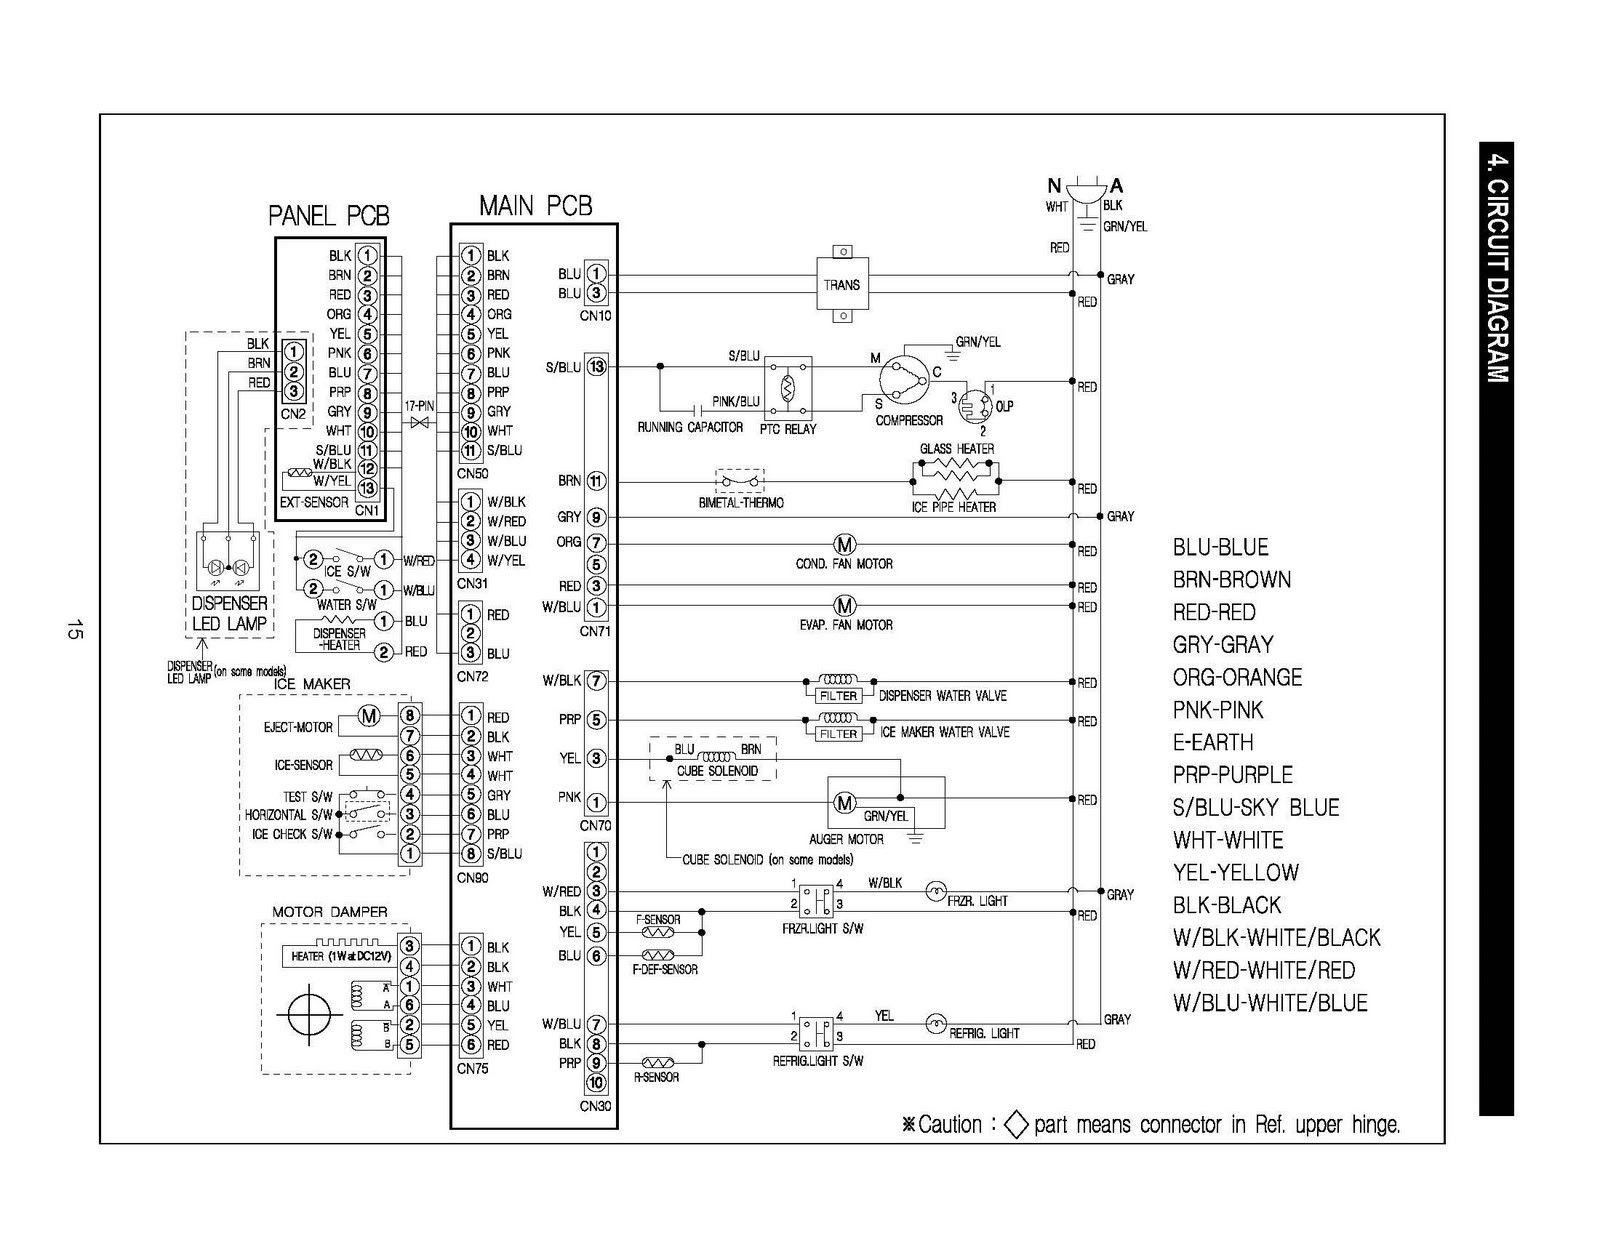 [DIAGRAM] Ge Appliances Wiring Diagrams FULL Version HD